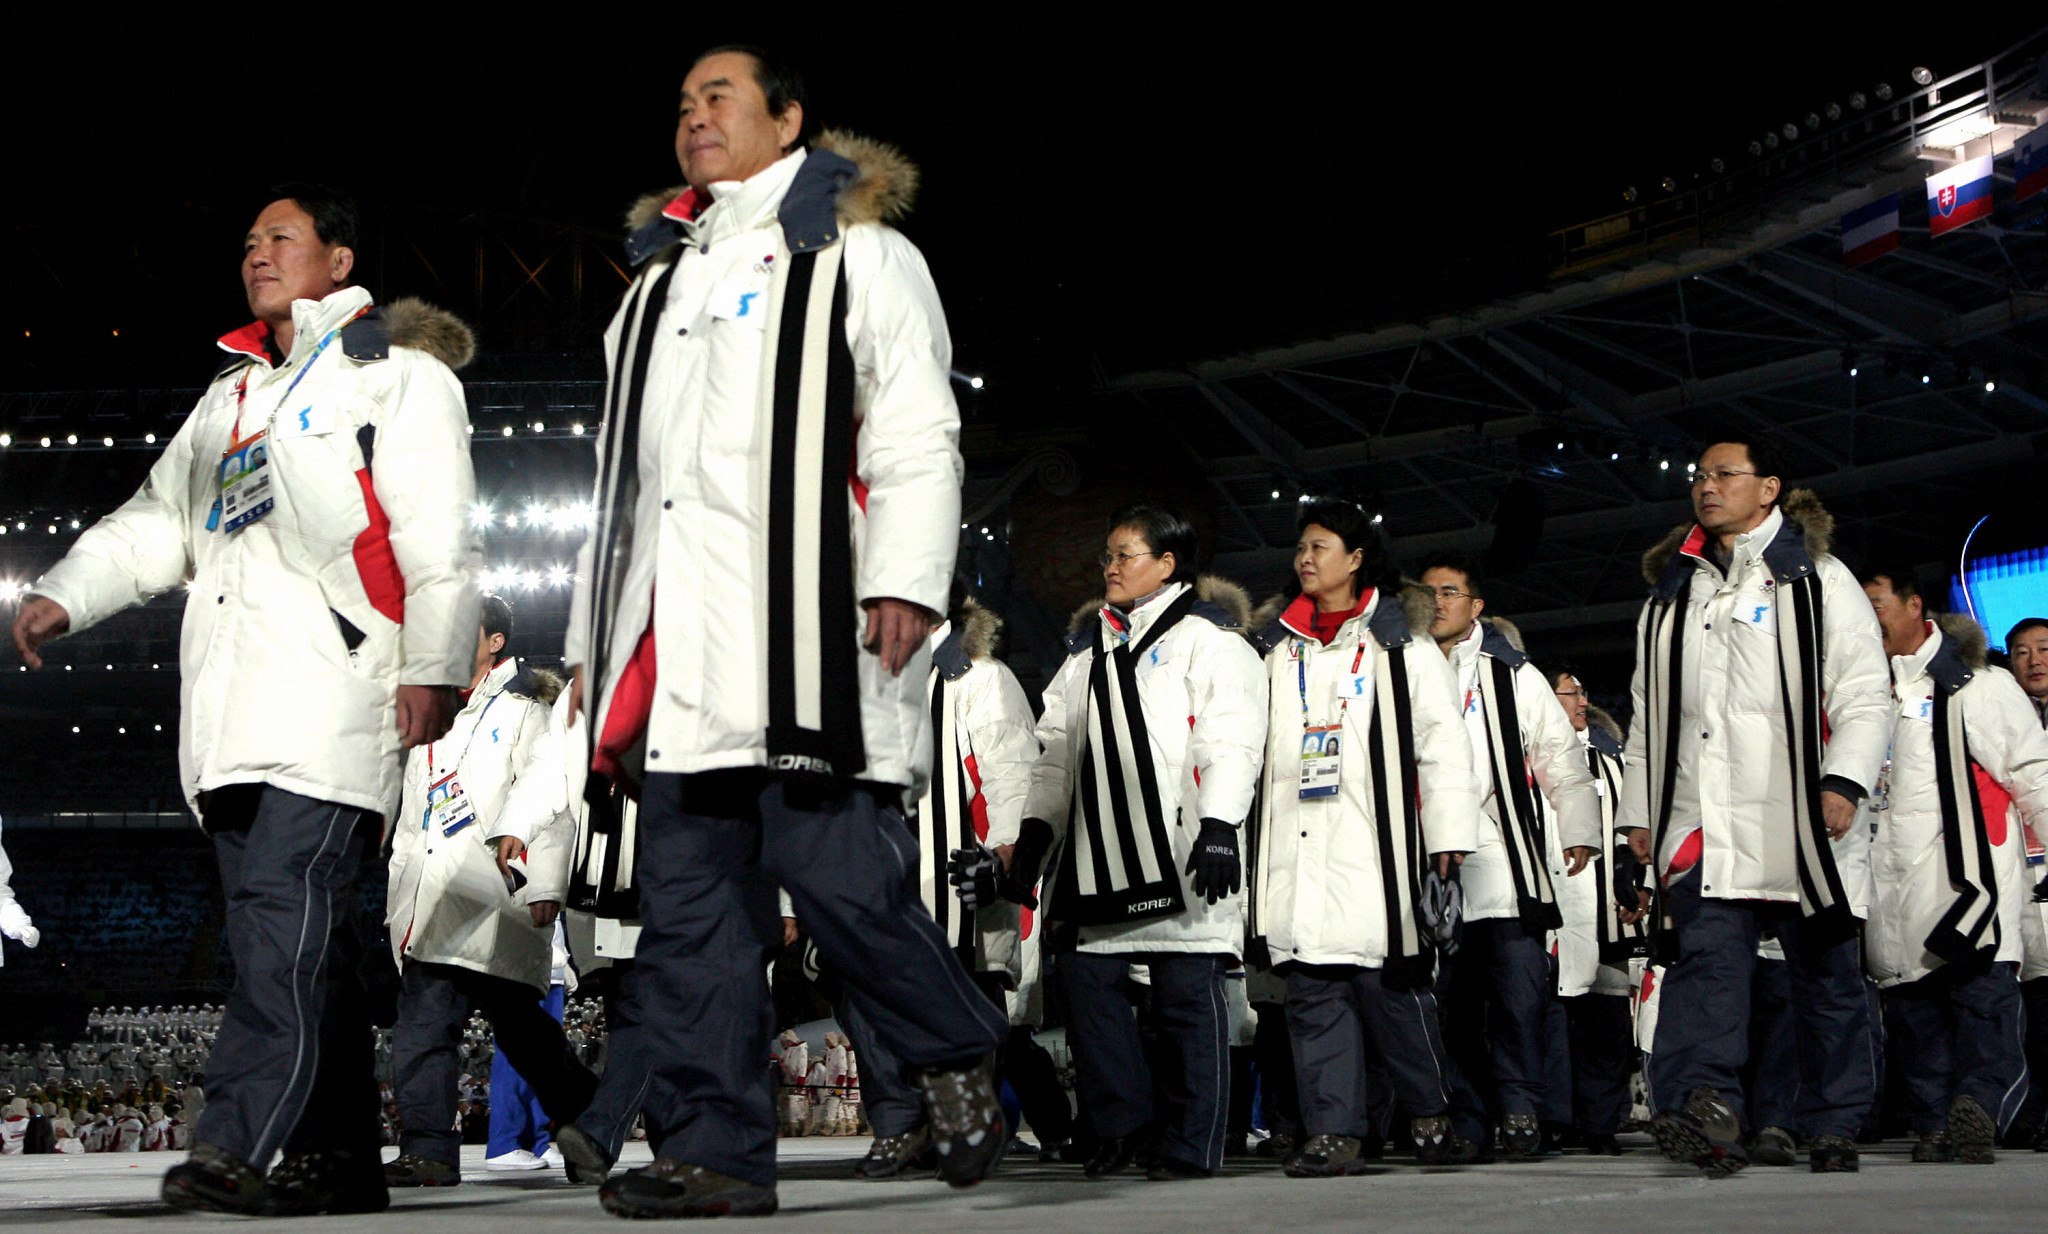 The two Koreas last marched together at an international event at the 2006 Winter Olympics in Turin ©Getty Images